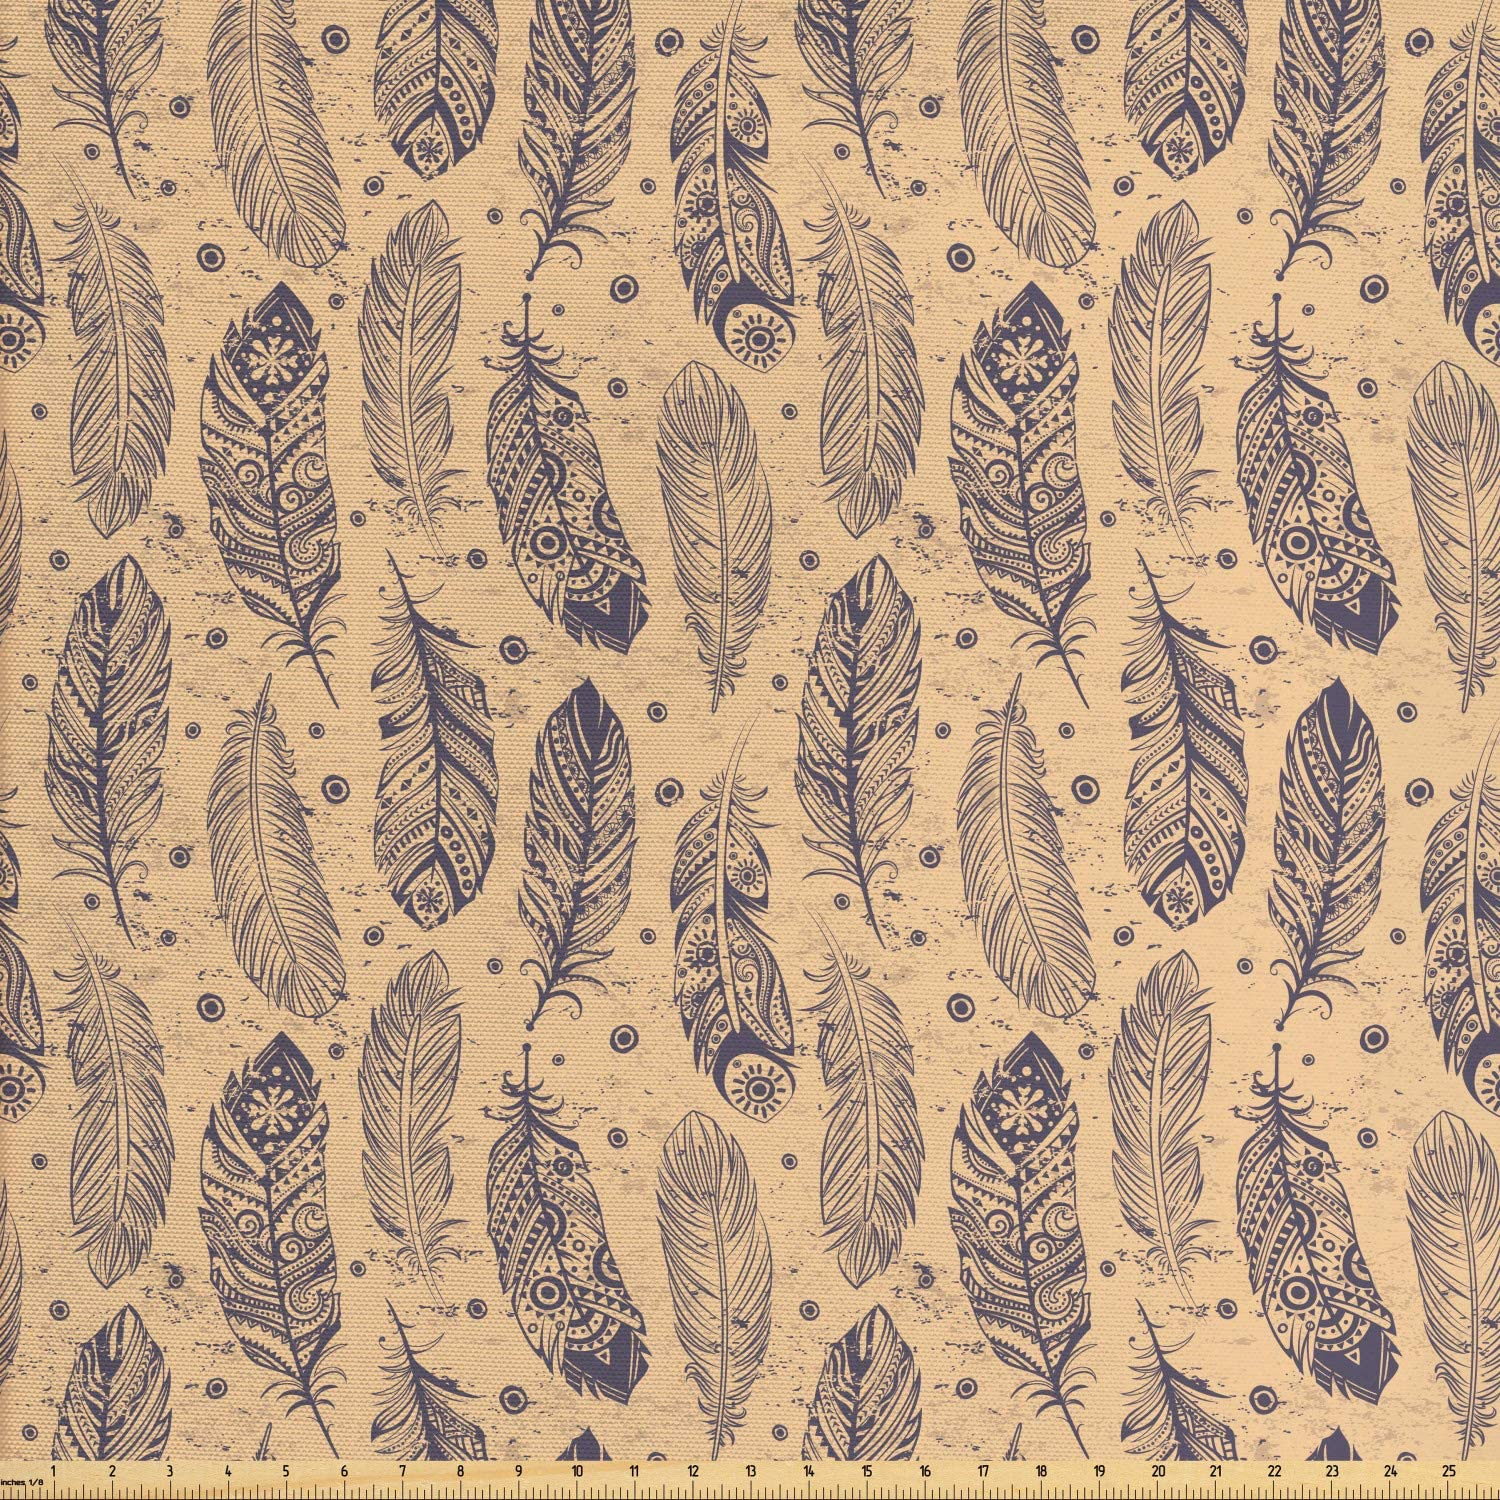 Lunarable Abstract Hippie Fabric by The Yard, Vintage Ethnic Feathers in Tribal Motifs Rhythmic Pattern, Decorative Fabric for Upholstery and Home Accents, Peach Dark Purple Grey